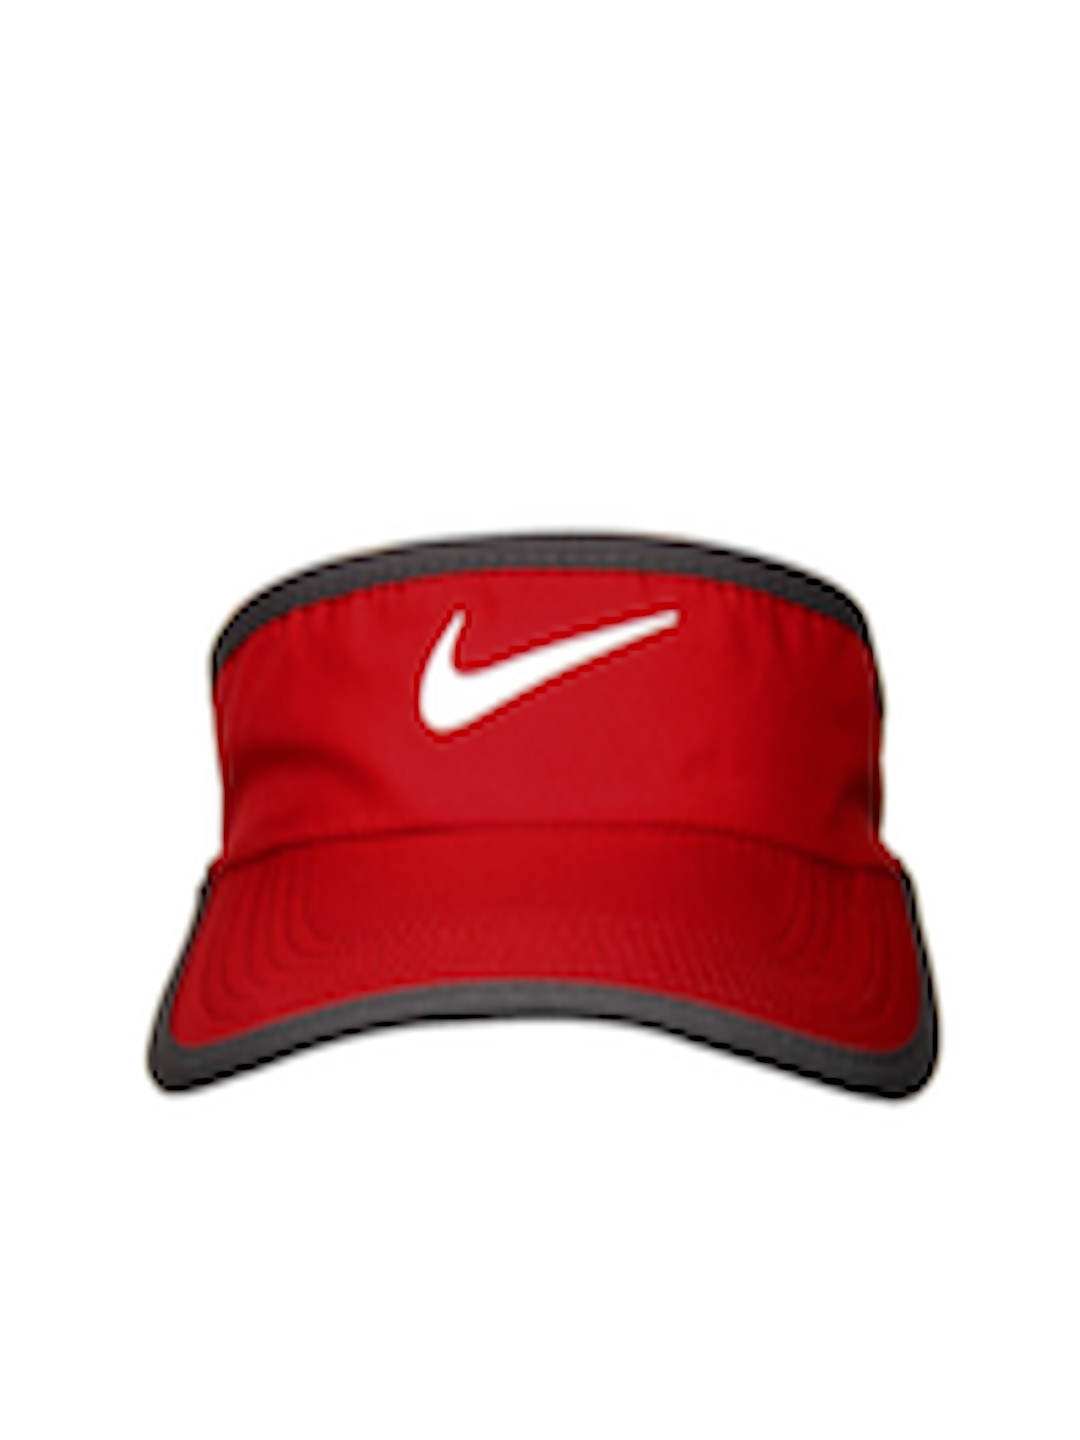 2d465dafb13a19 Buy Nike Red & Grey Ws Feather Light Visor Tennis Caps - Caps for Unisex  487653 | Myntra